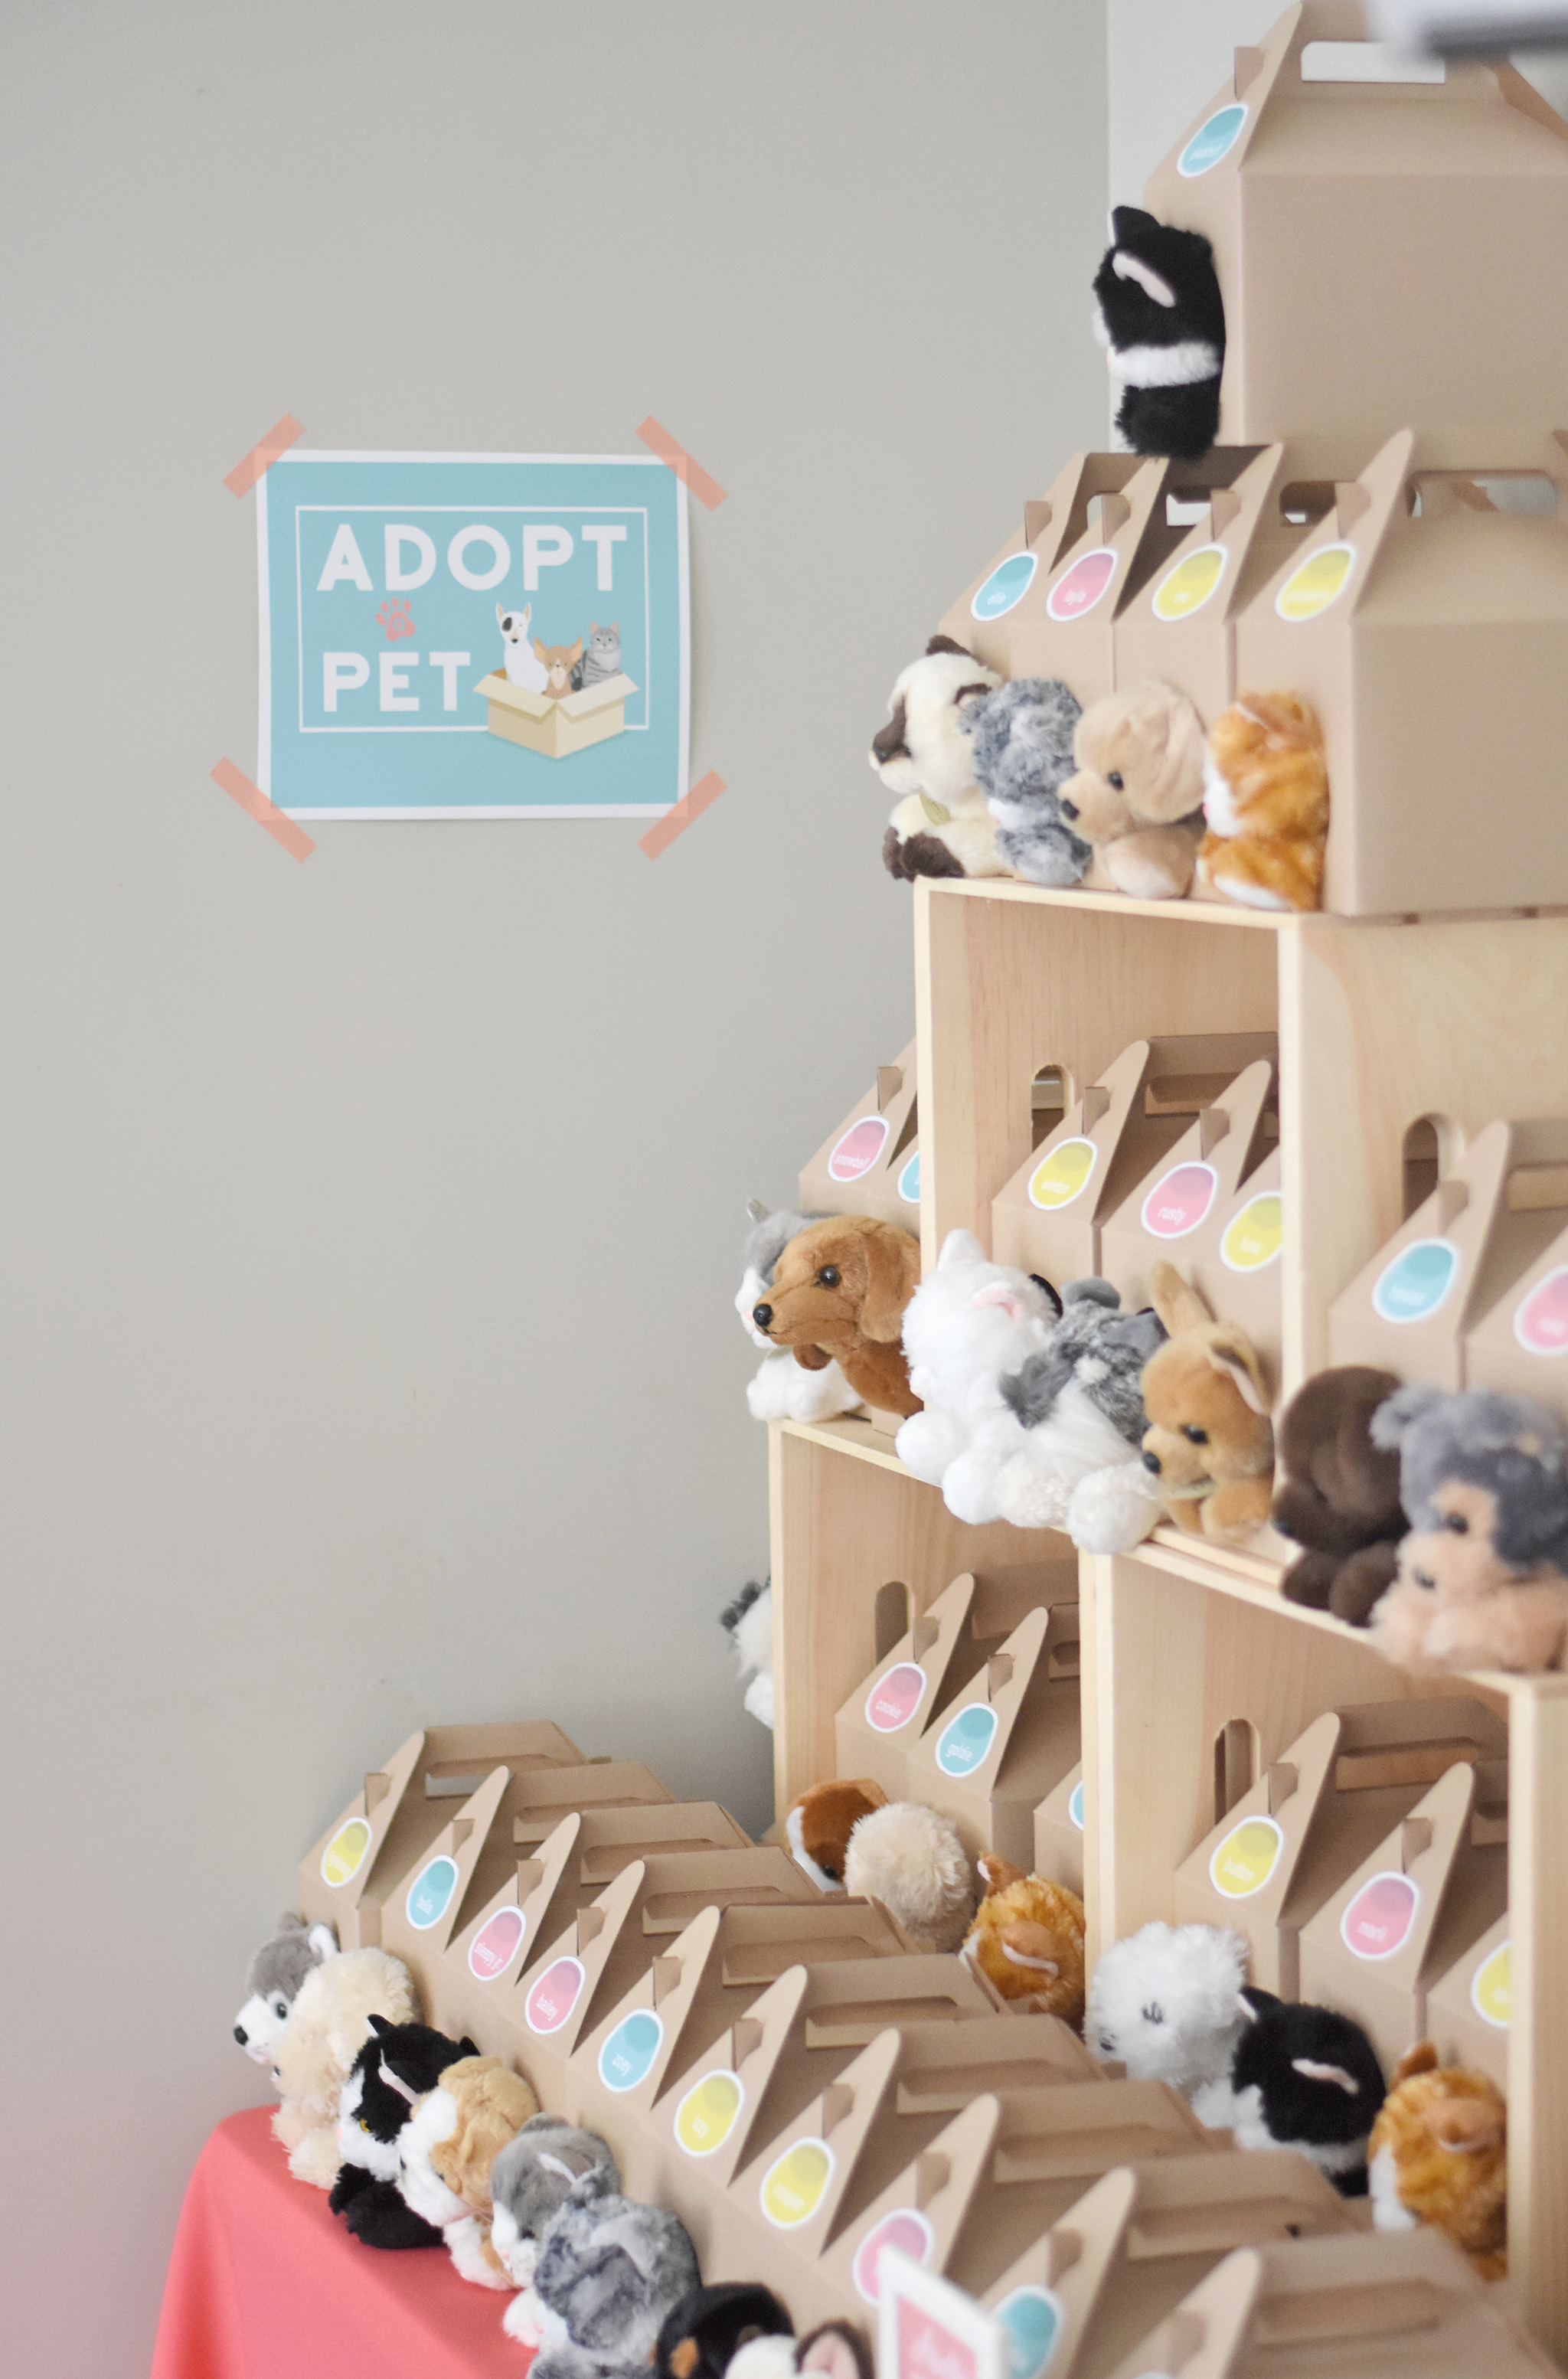 Adopt a pet party favors!